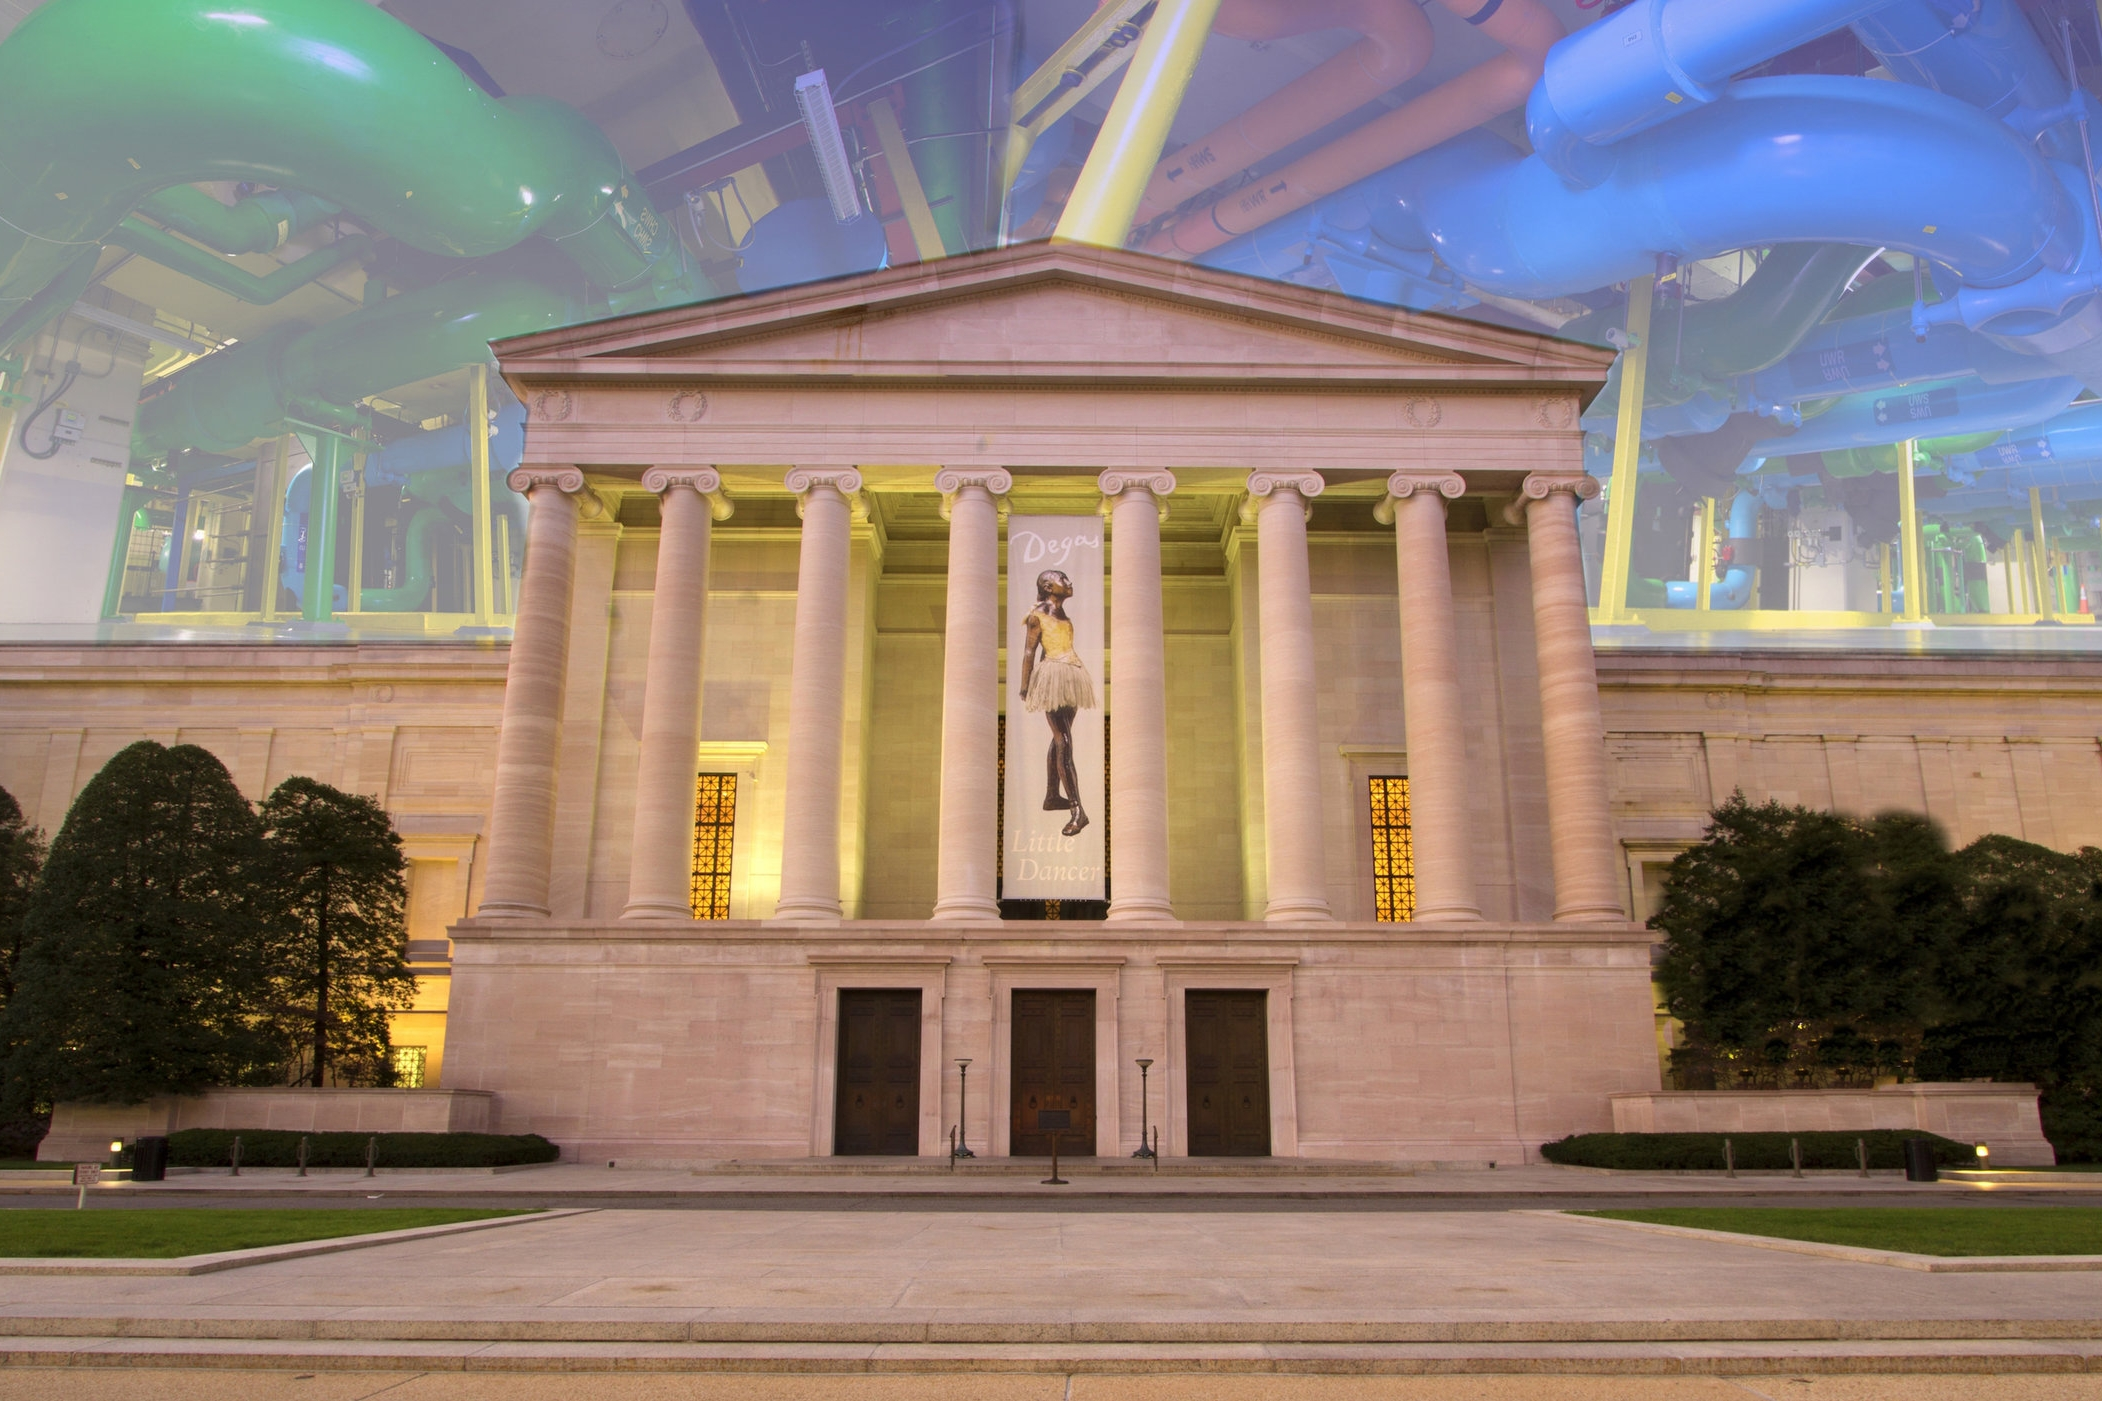 The National Gallery of Art, a steadfast SETTY client, engaged itself with the grand goal of cutting energy costs by 20 percent by 2020; a goal met and exceeded by 2013. By focusing on controls, operations, and maintenance, to date the NGA has reduced their energy costs by $5,000,000 and together we continue to drive the energy consumption down.